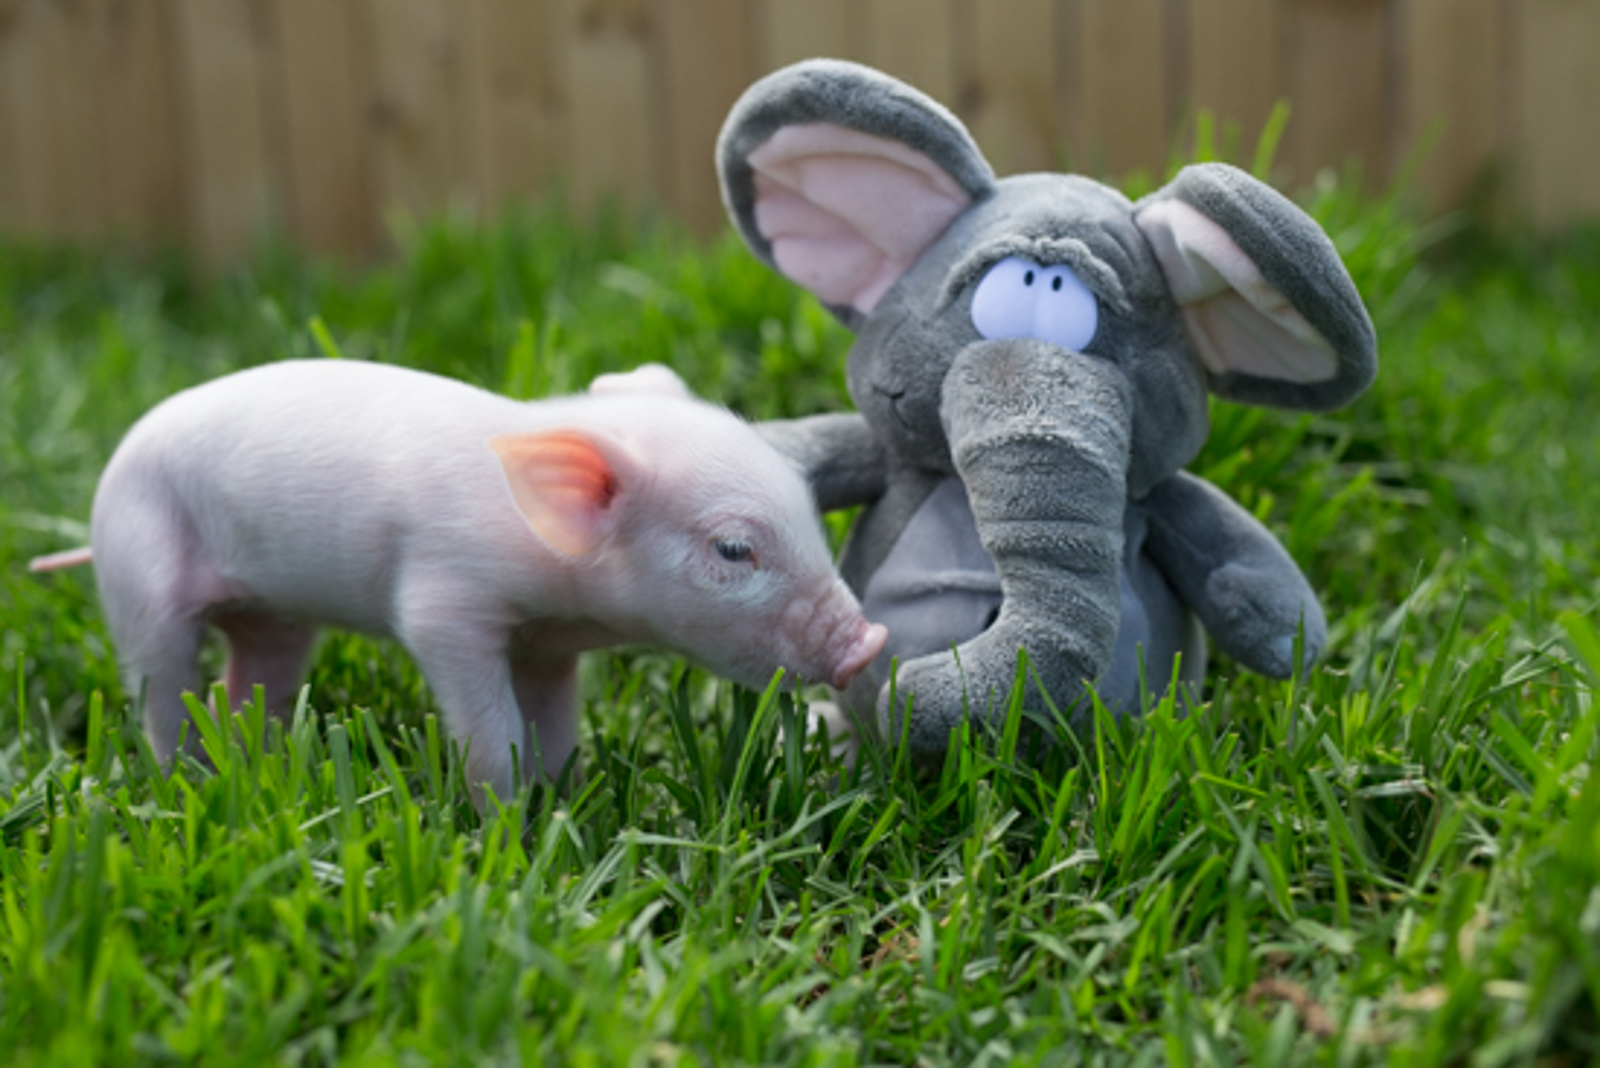 These Rescued Farm Animals Have the Sweetest Surrogate Moms ... Giant Stuffed Animals!